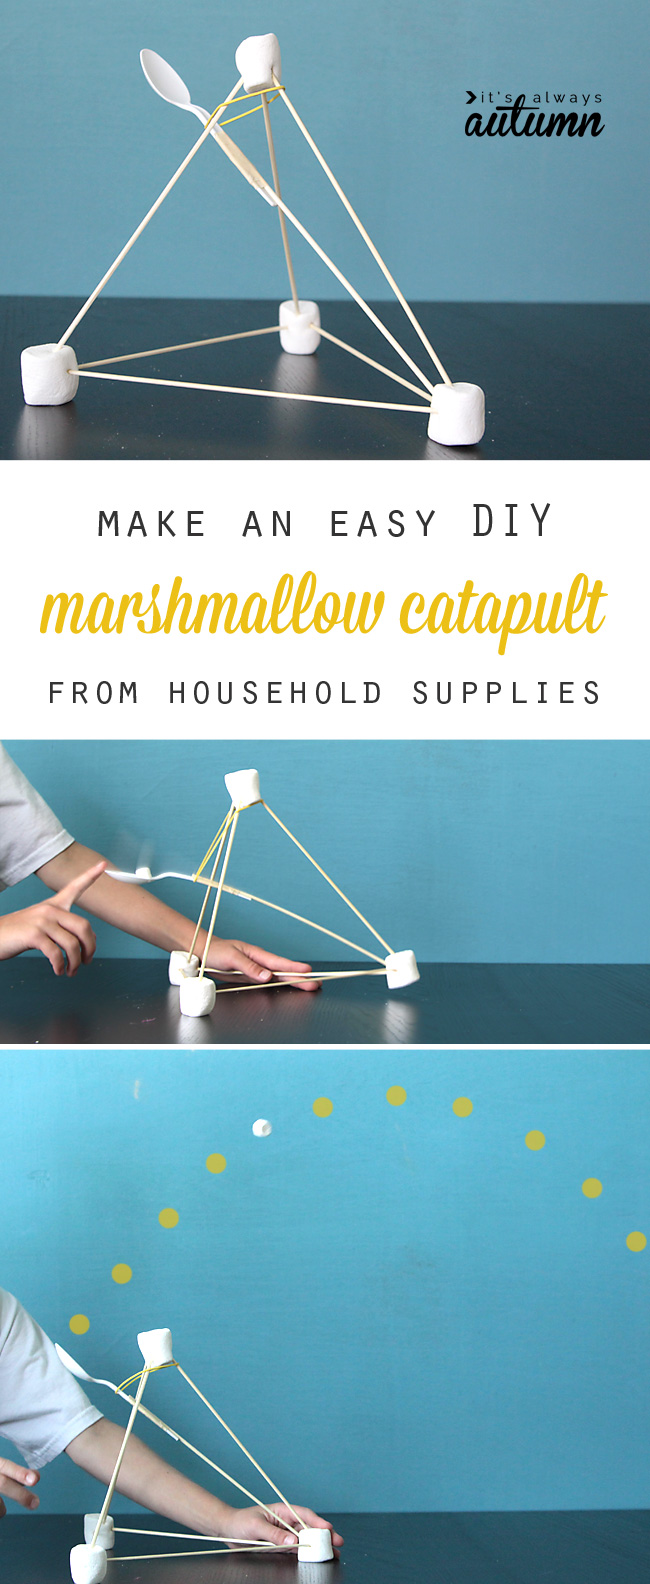 Genius! This simple marshmallow catapult can be made from common household supplies and is so easy to put together kids can do it on their own! Great science learning activity, and lots of fun. How to make a marshmallow launcher.